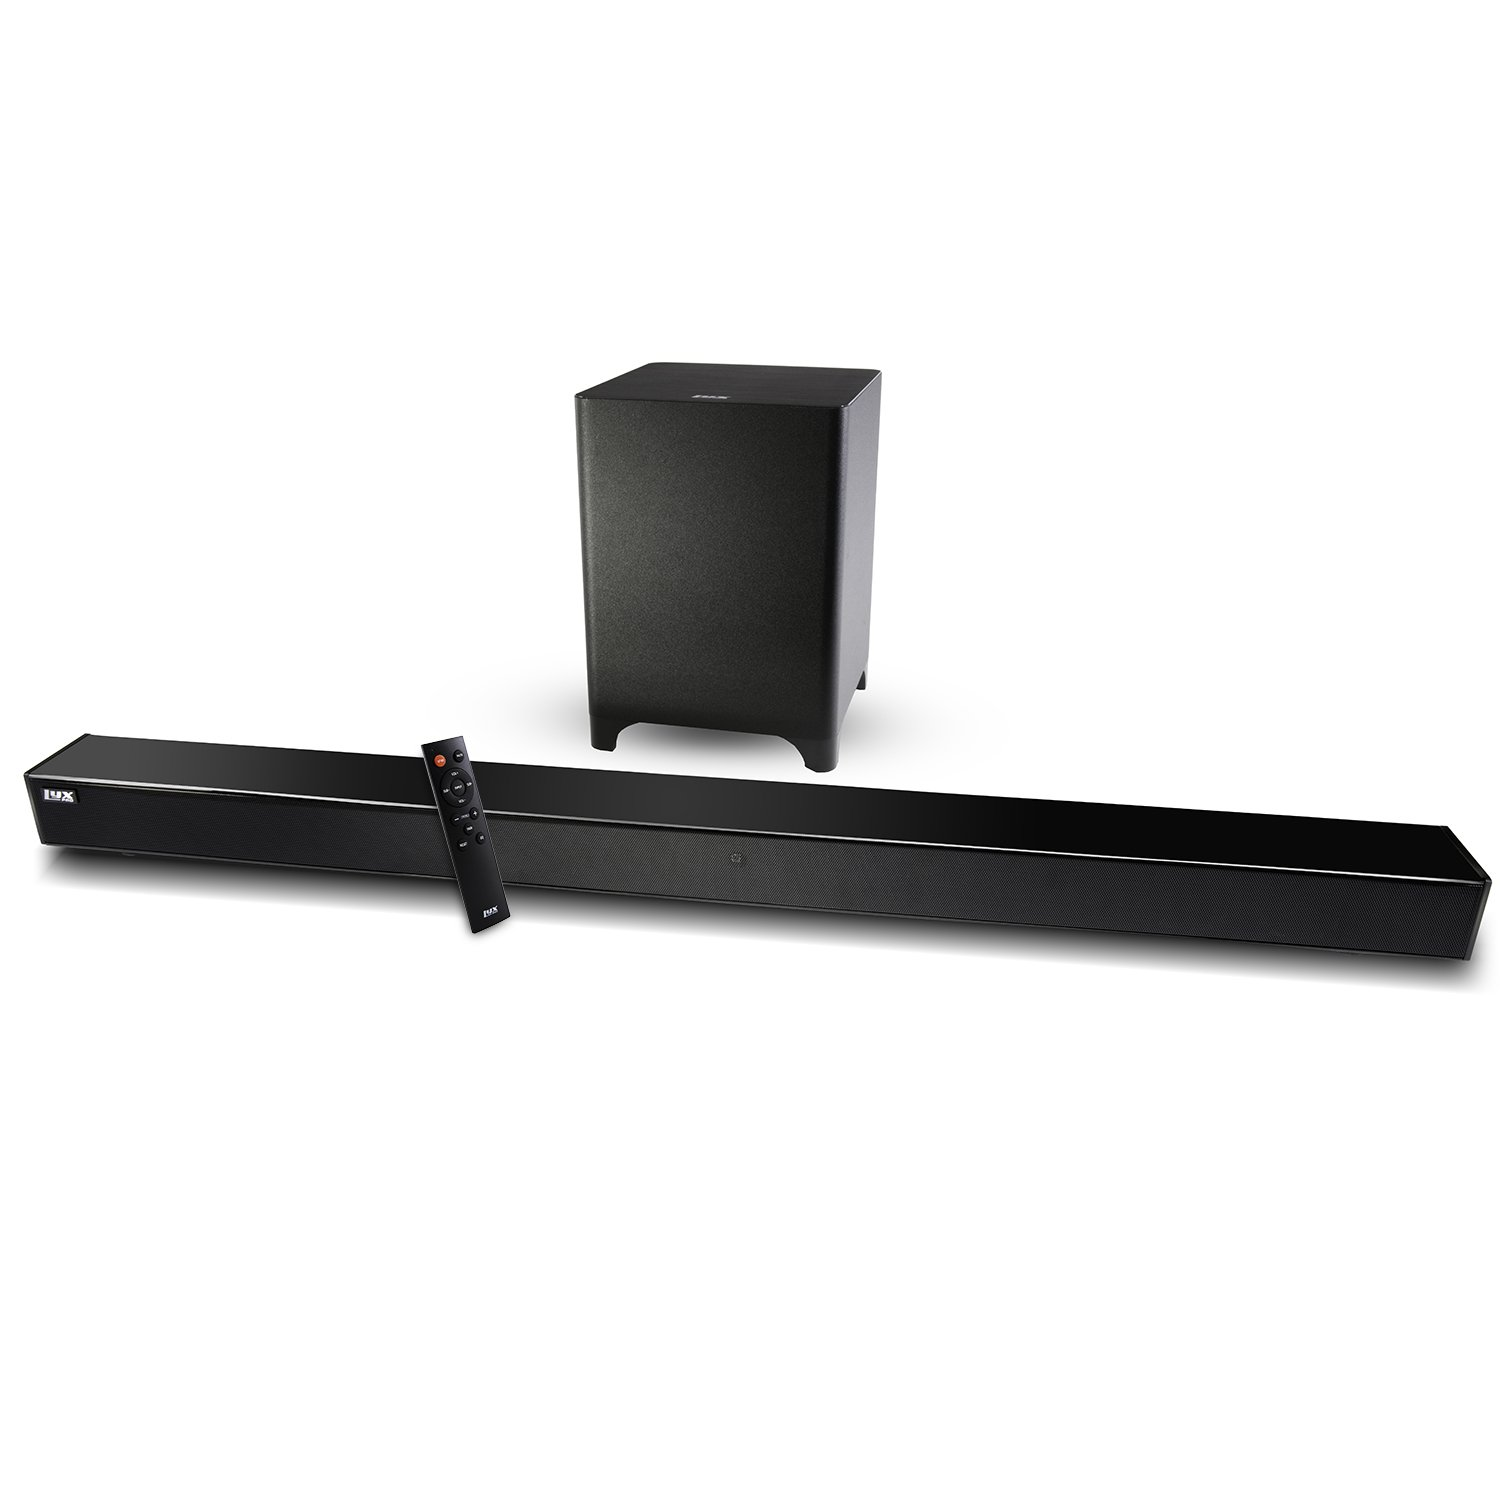 LyxPro Sound Bar System Bluetooth Soundbar Speaker Plus Wireless Subwoofer for TV, Home Theater, PC, Cellphone, Tablet & More, Includes Remote Control, DC Adapter, Wall Mount Kit & 3.5mm Cable